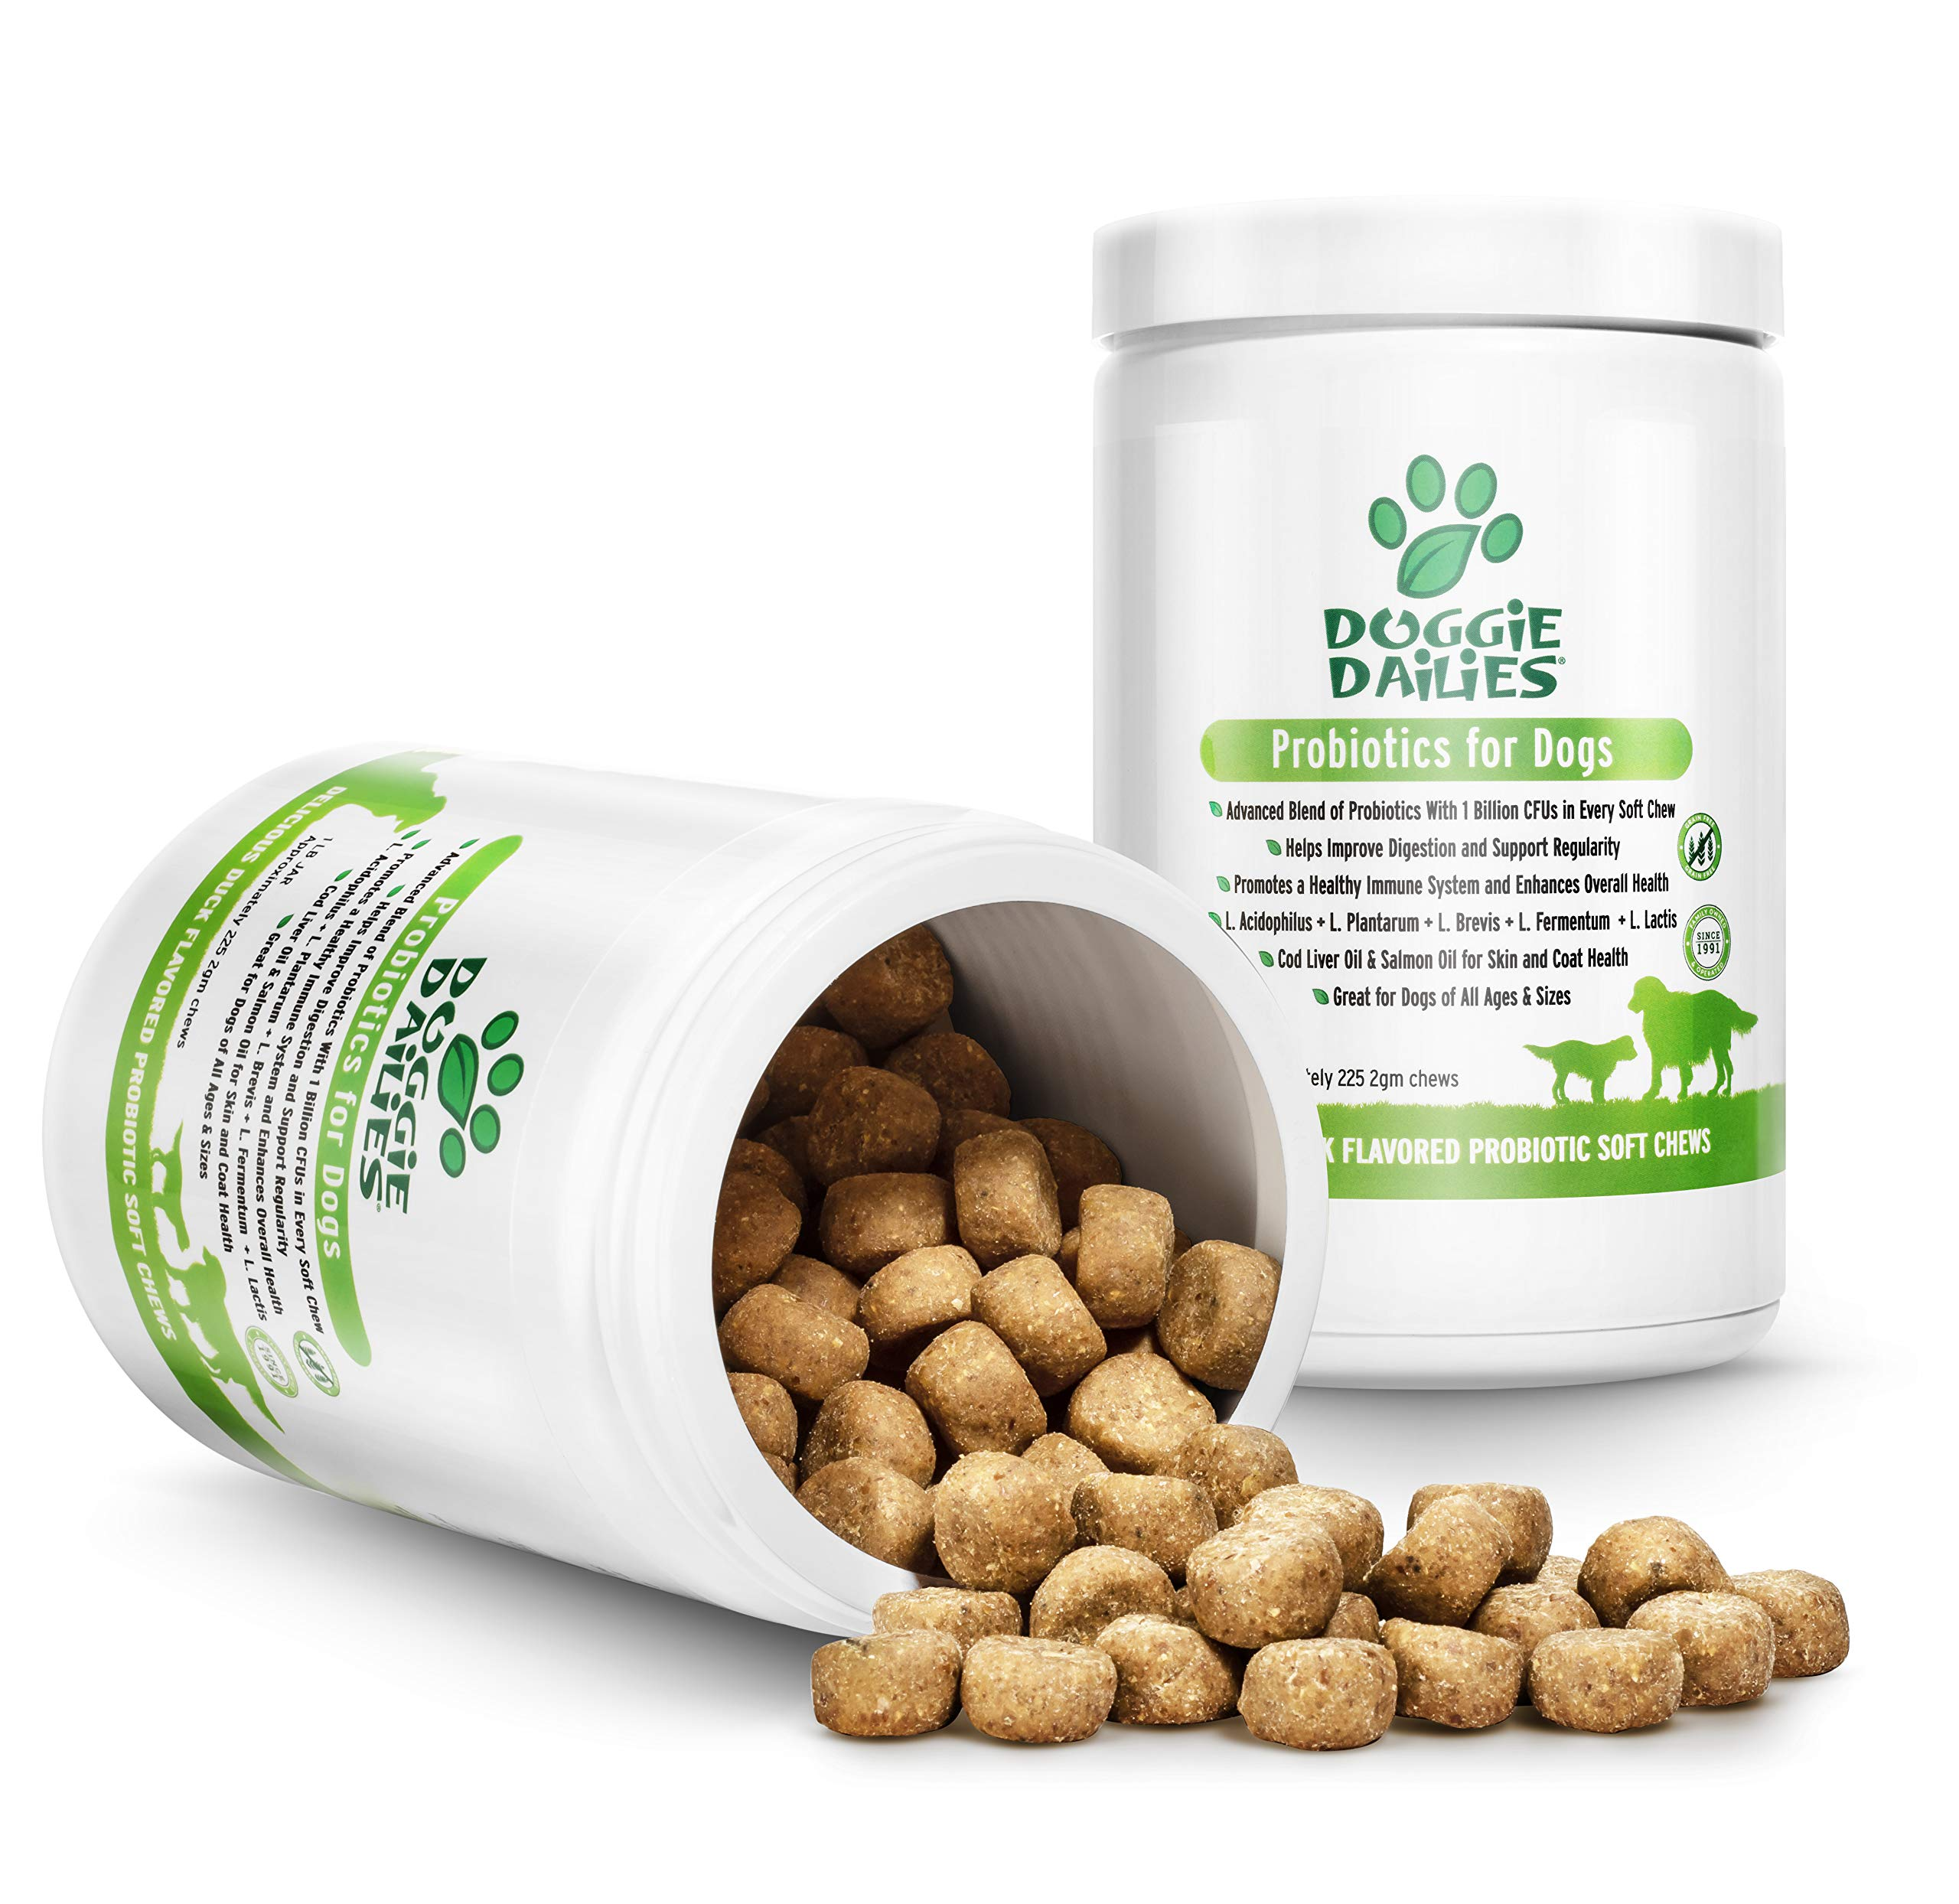 Doggie Dailies Probiotics for Dogs, 225 Soft Chews, Advanced Dog Probiotics with Prebiotics, Relieves Dog Diarrhea, Improves Digestion, Enhances Immune System, Improves Overall Health, Made in the USA by Doggie Dailies